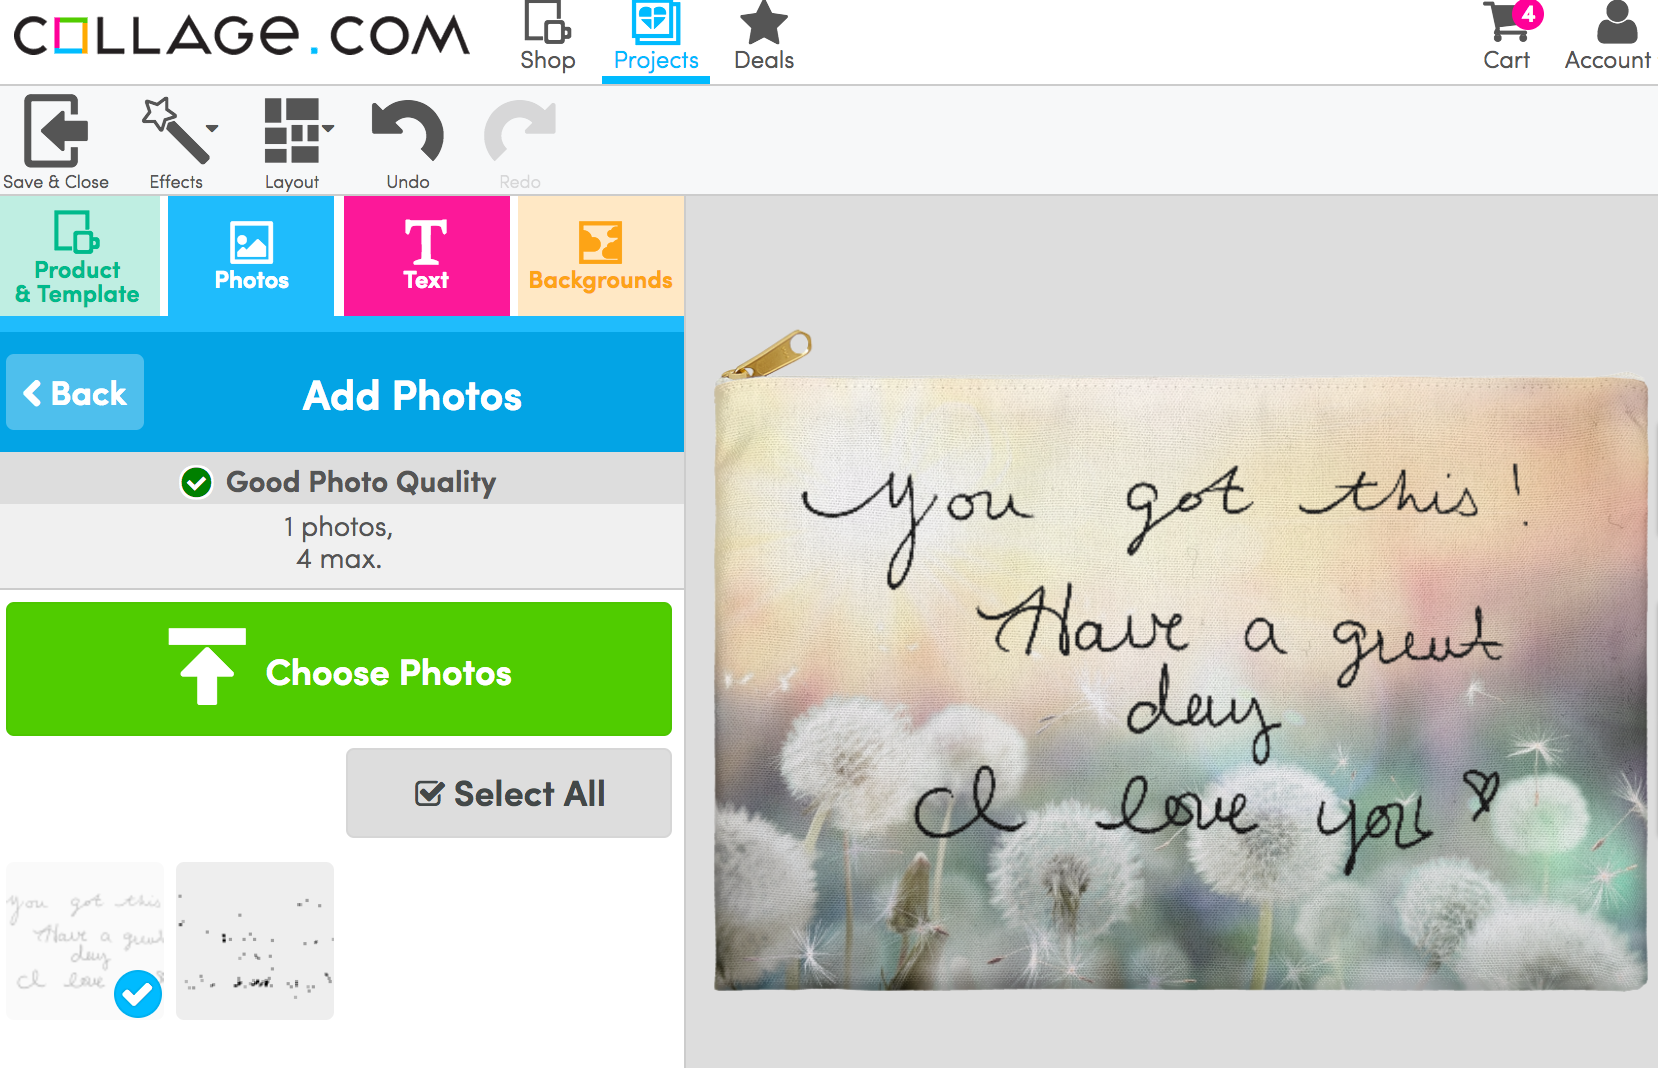 Let Collage.com give your letters new life this Valentine's Day